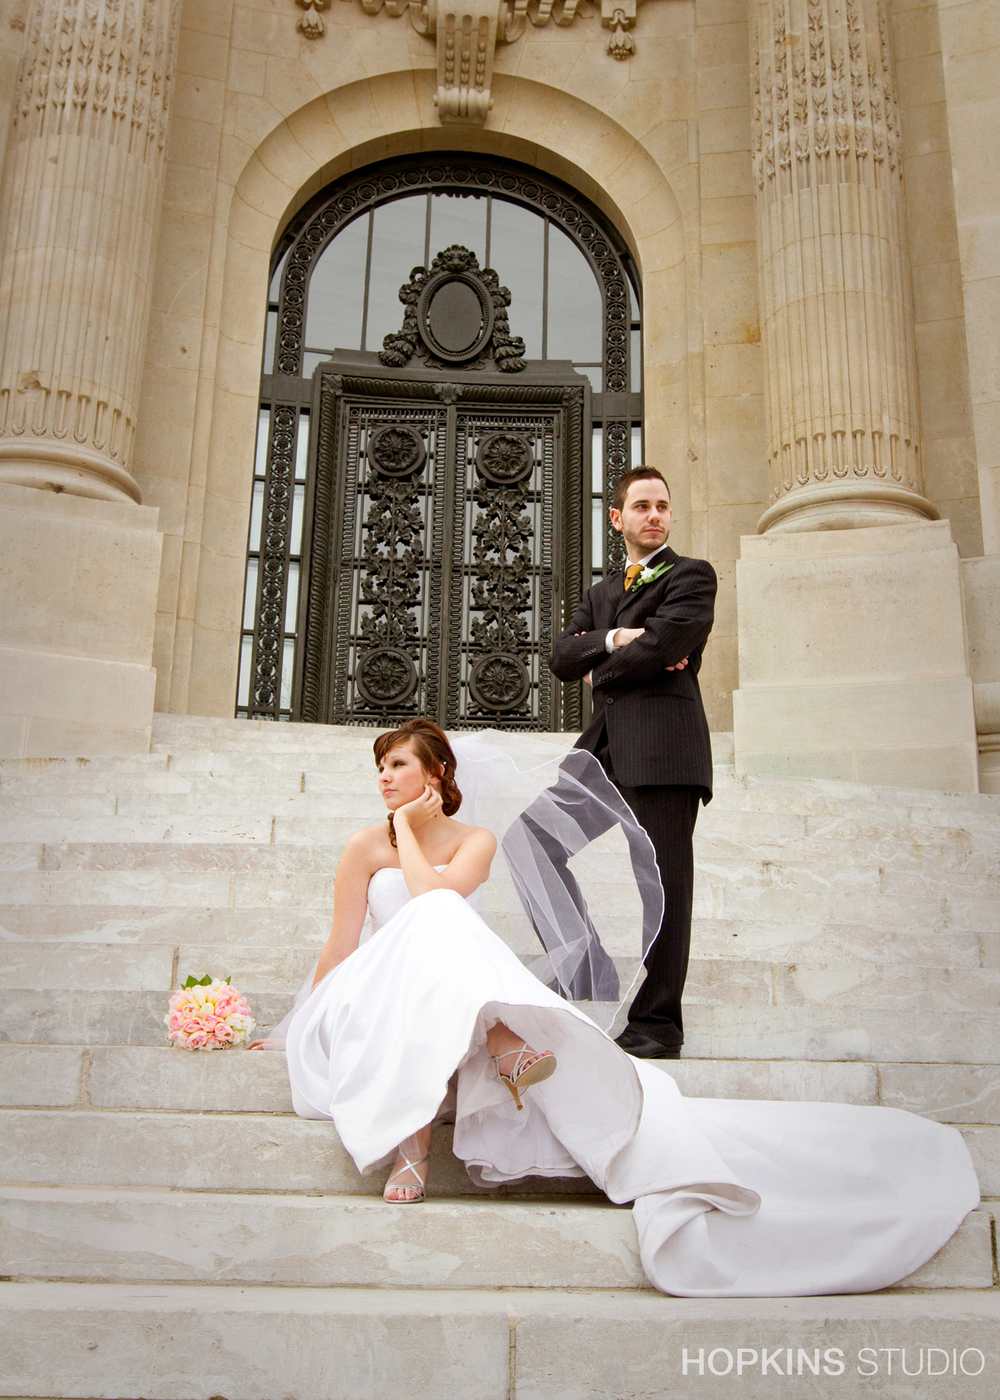 wedding-photography-Eiffel-Tower-Notre-Dame-Paris_18.jpg